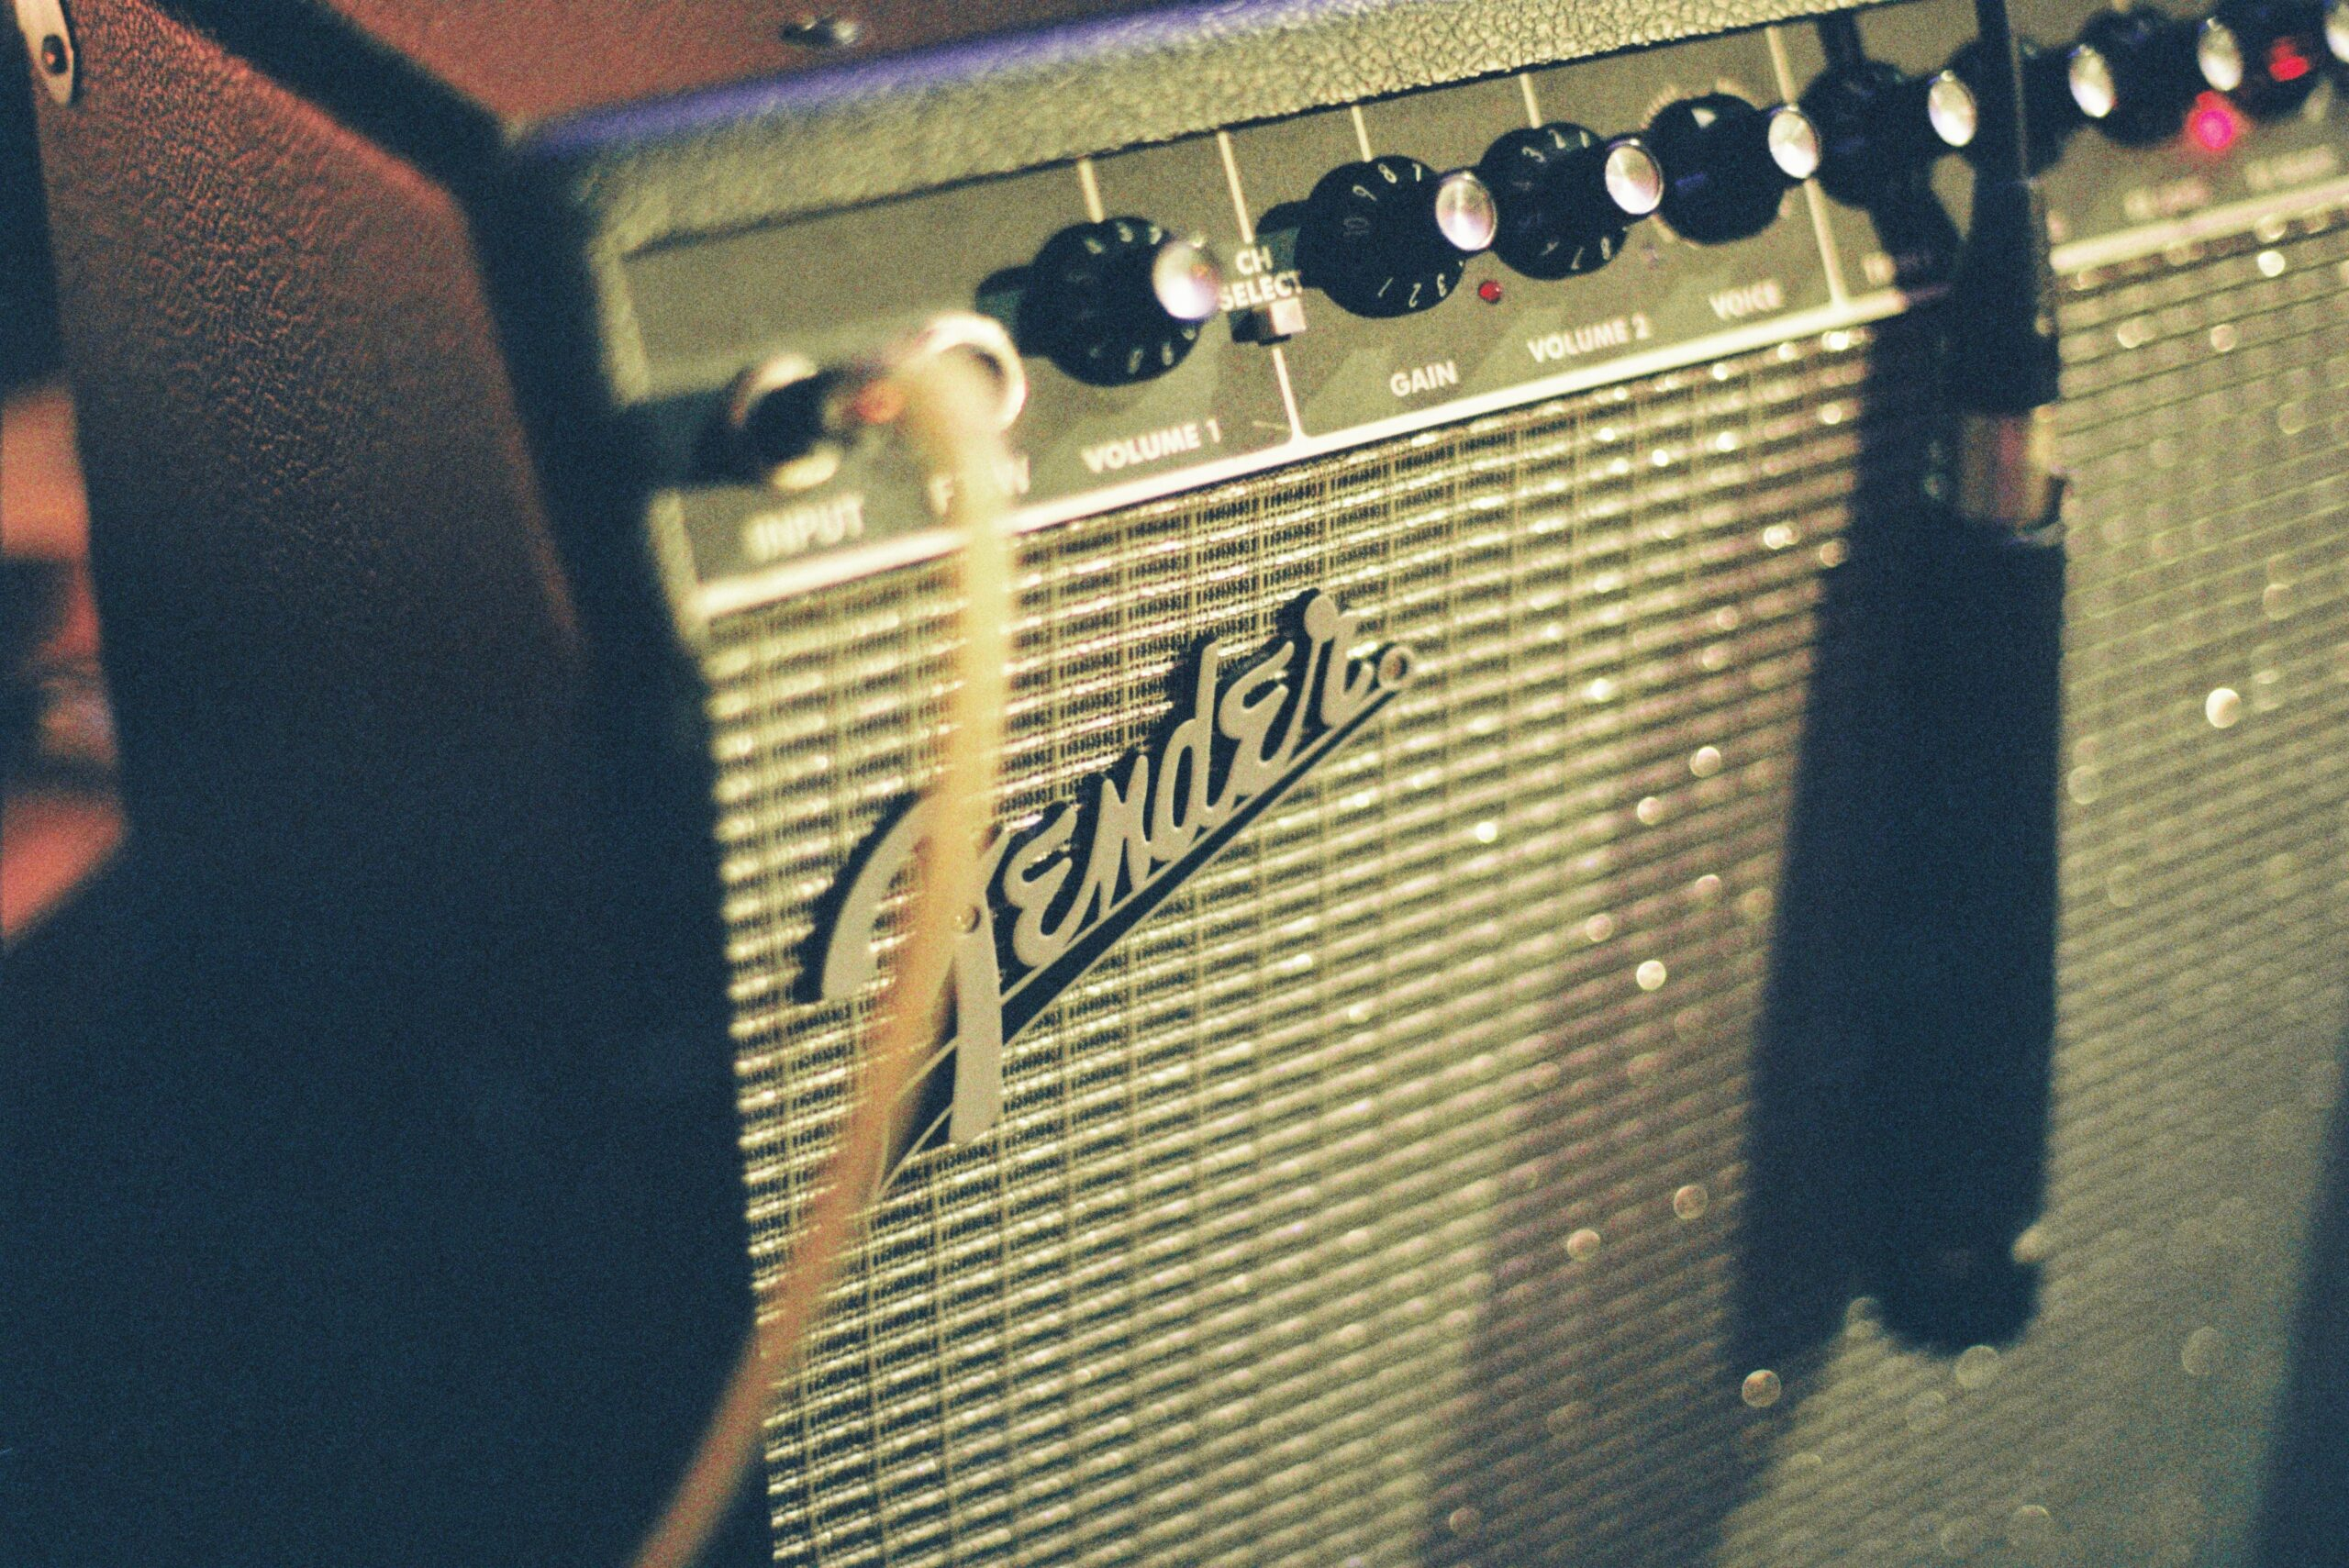 Fender Guitar Amplifier | The Top 15 Guitar Terms You Need To Know